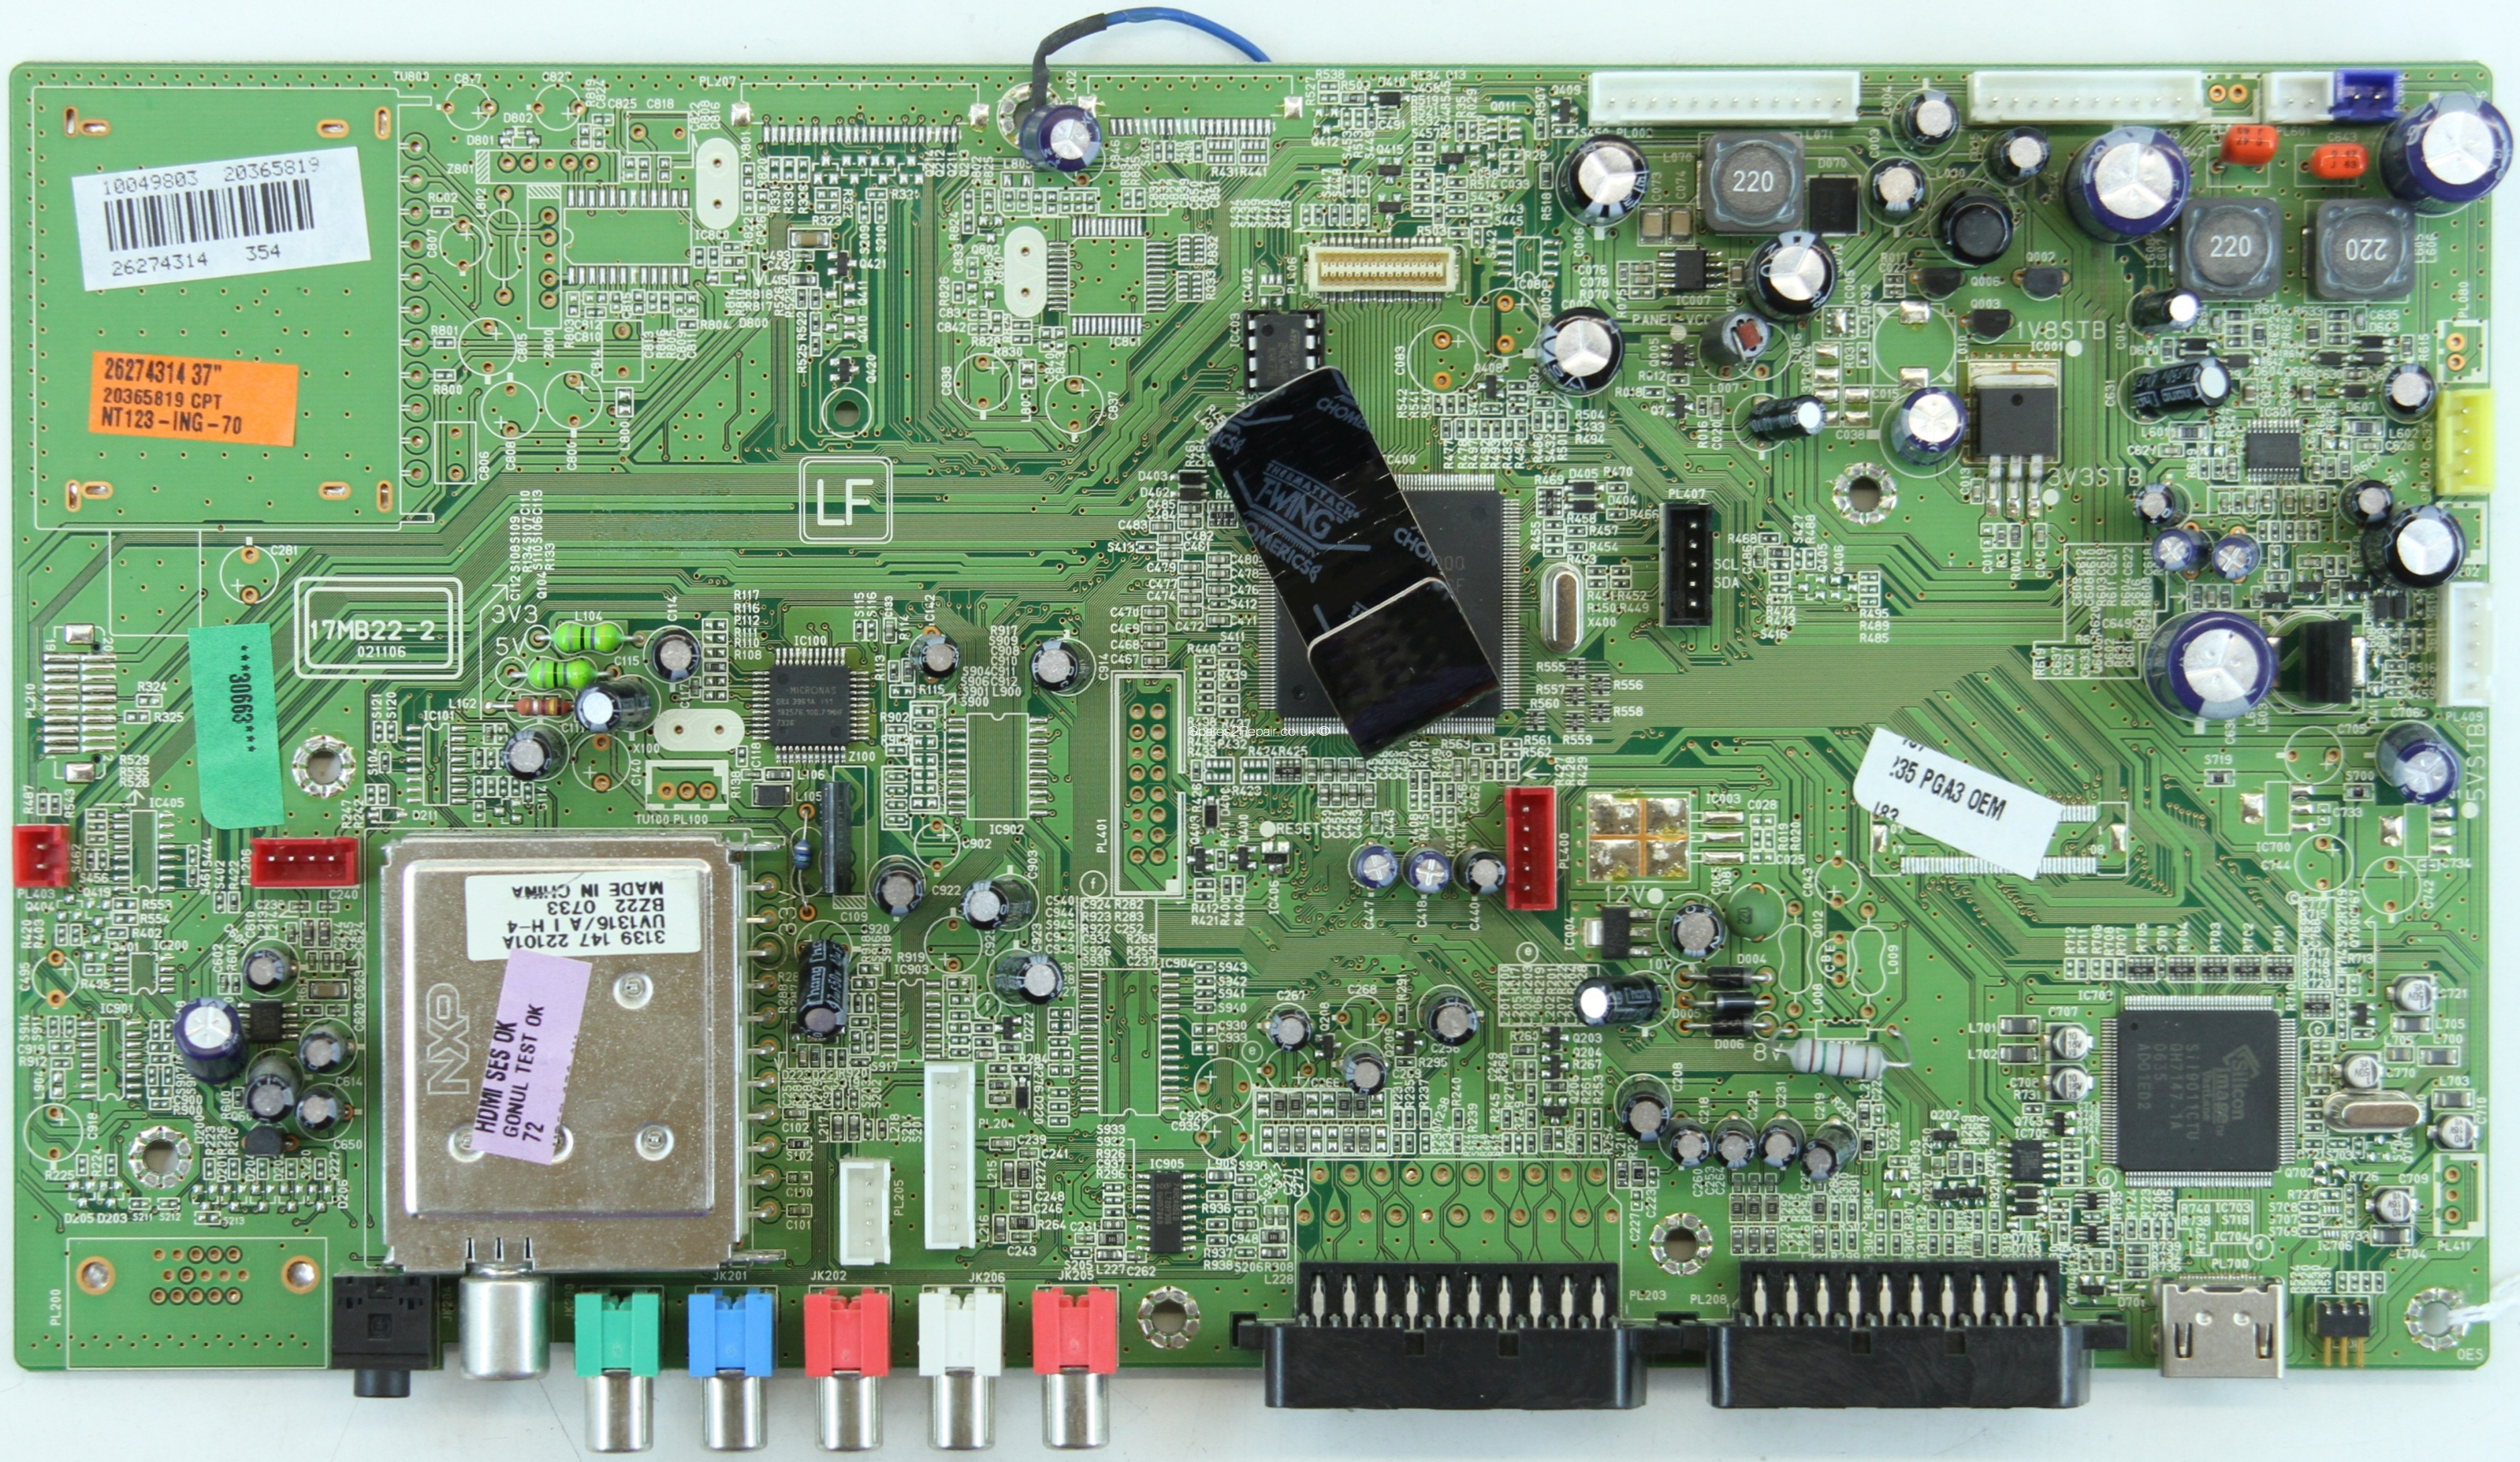 Bush LCD37805HD - Main AV - 17MB22-2 - 021106 - 20365819